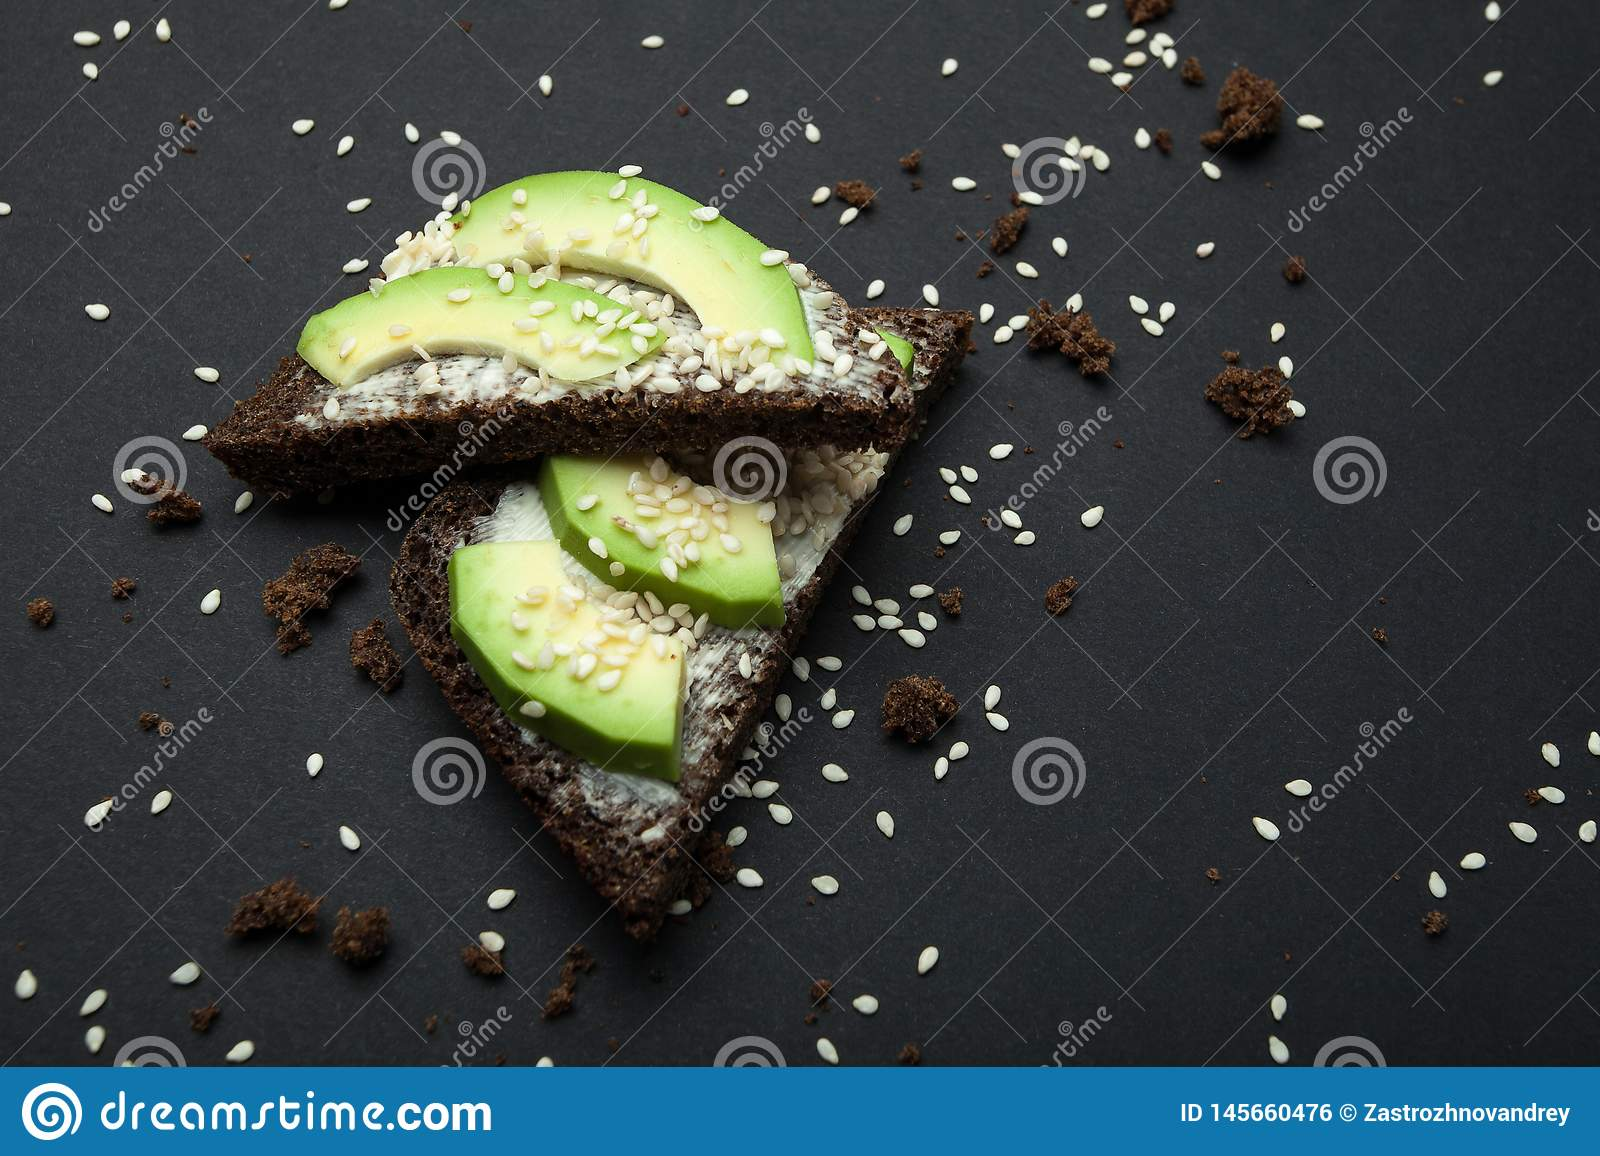 Avocado sandwich with sesame seeds and black bread isolated on a black background